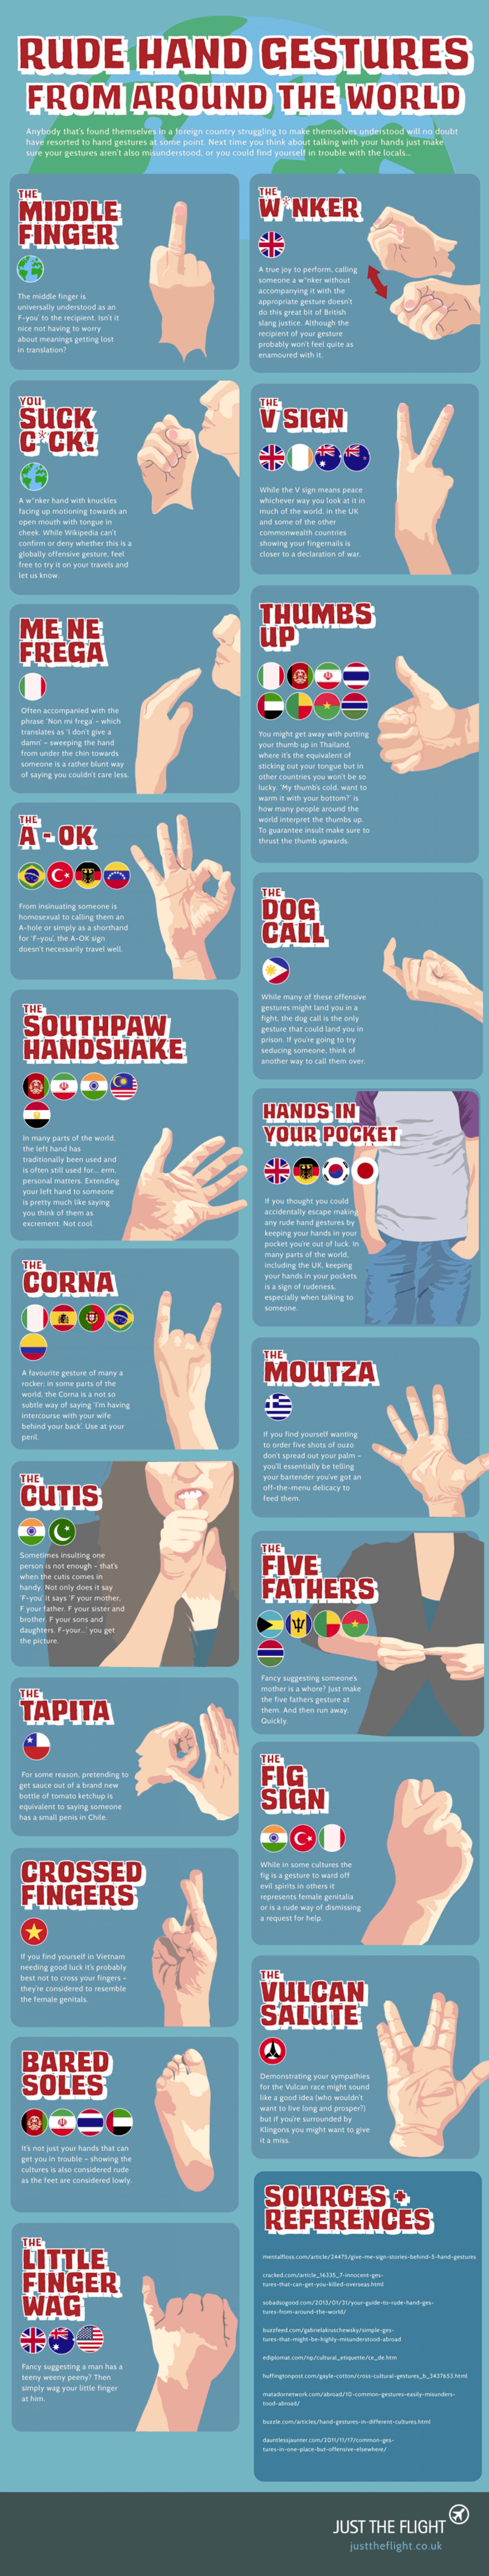 06 rude-hand-gestures-from-around-the-world_533926556232e_w1500